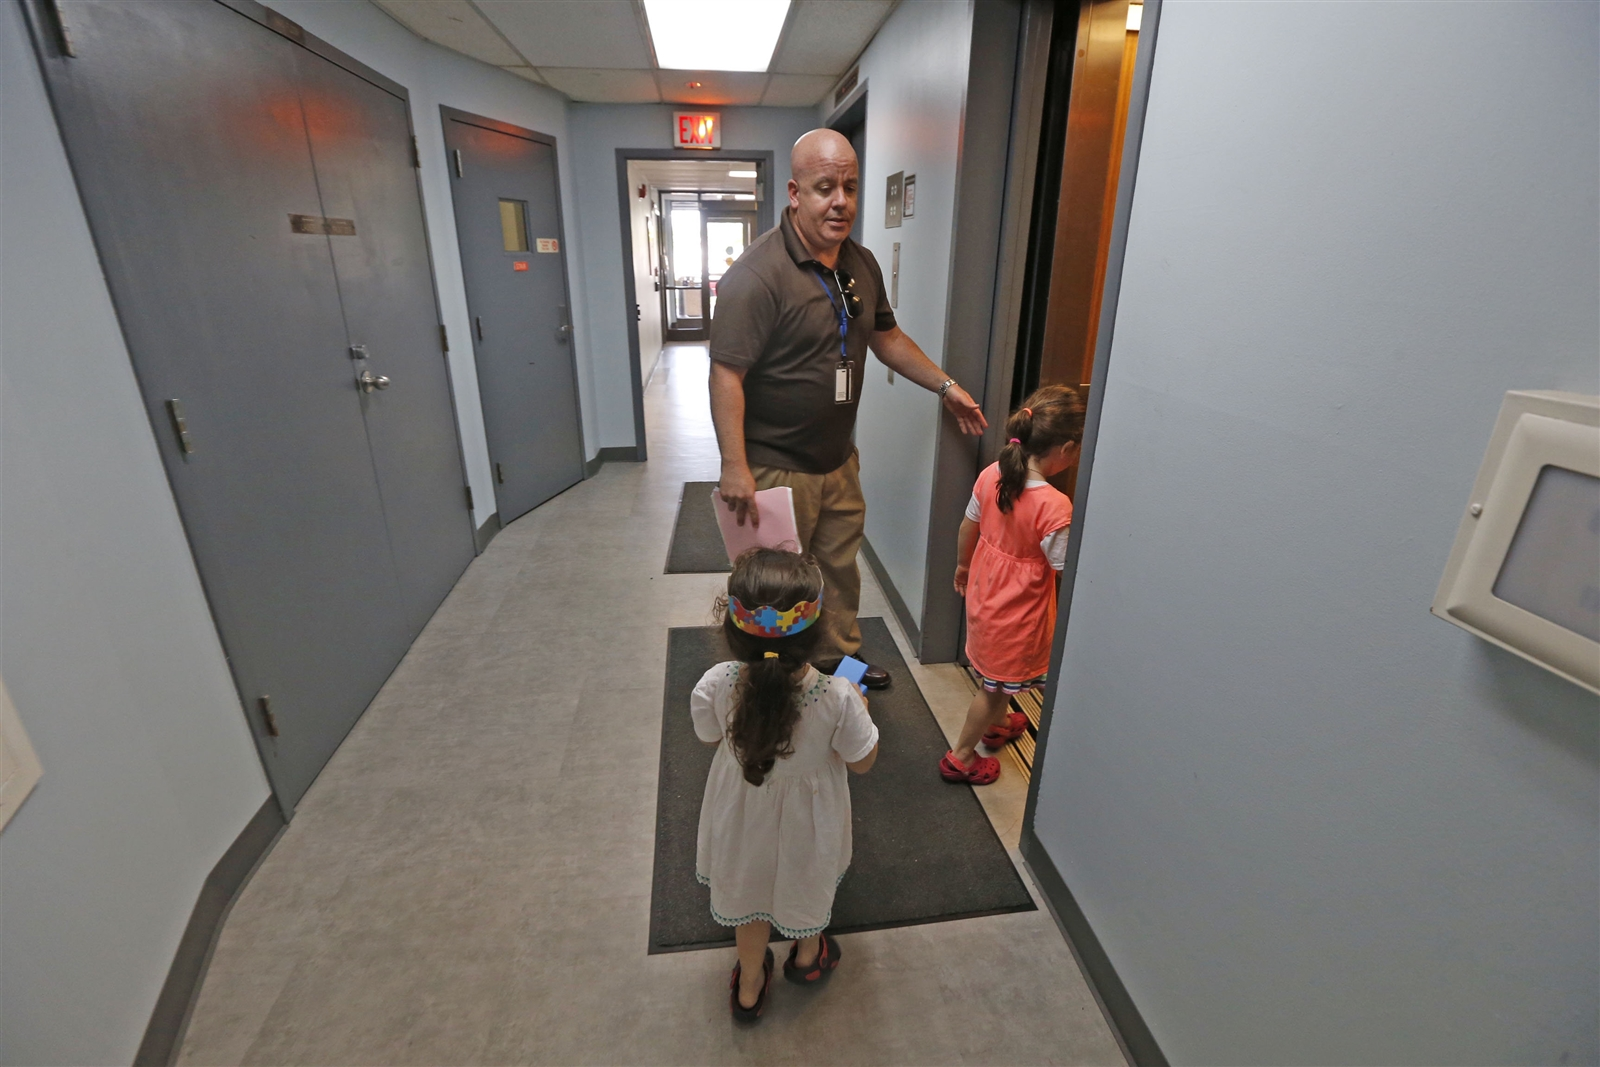 As his daughters, Marisol, 5, right entering elevator, and Mia Luz, 3, foreground, try to keep up with him in his quest, John Starkey, the new principal at Lafayette International High School, working the field, walks through the hallways of the low income Santa Maria Towers apartments hunting for students from the Hispanic community that haven't enrolled in school yet.